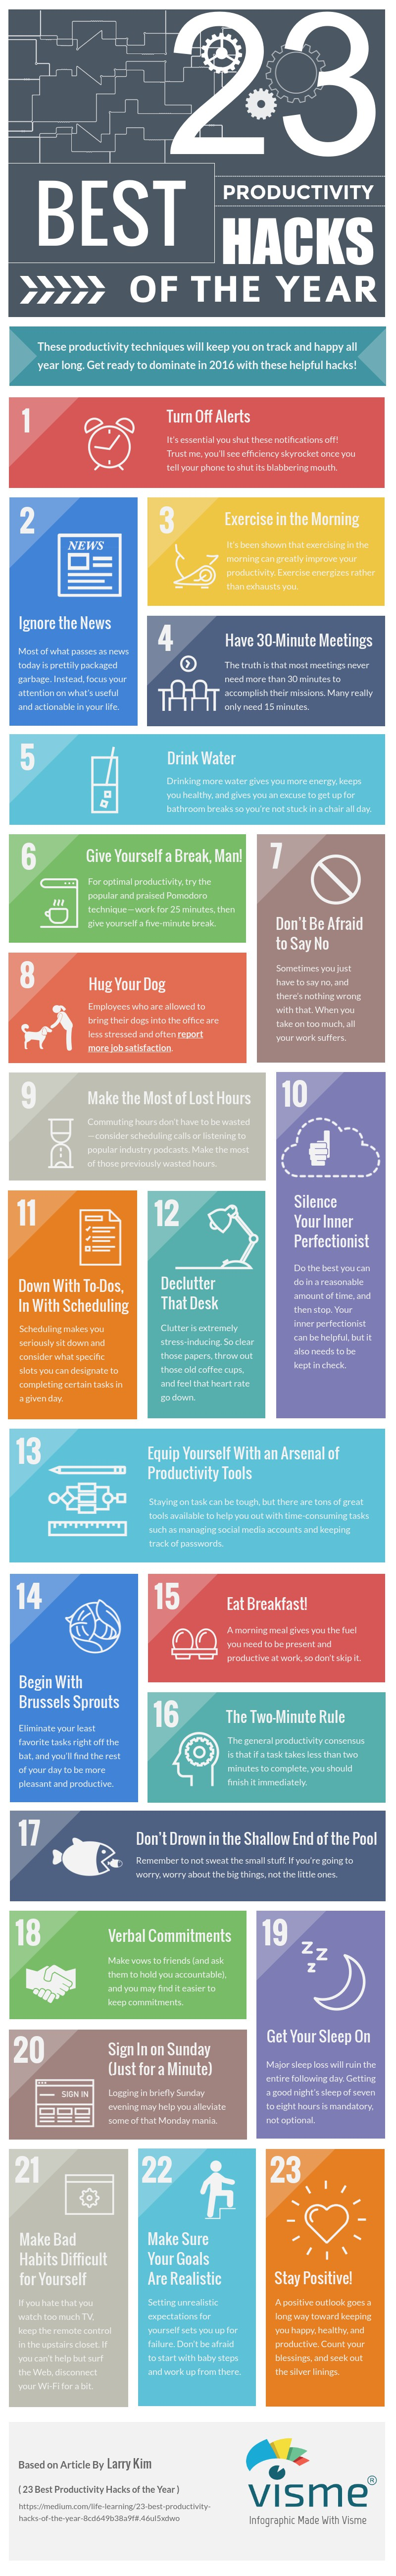 productivity hacks infographic